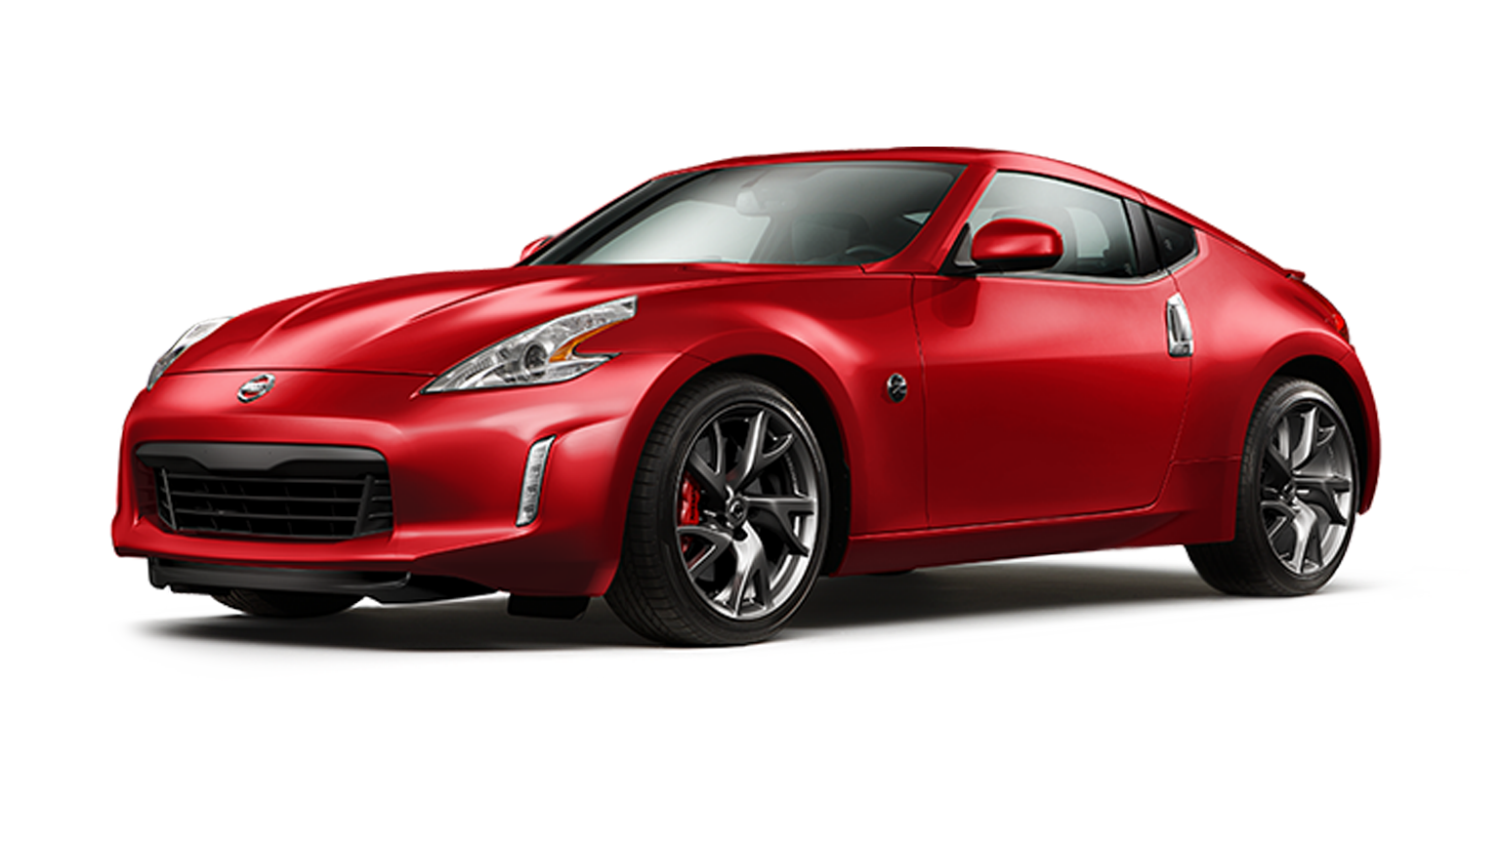 New Vehicles Nissan 370z Fuse Box Location If You Love To Drive There Is No Better Place Be